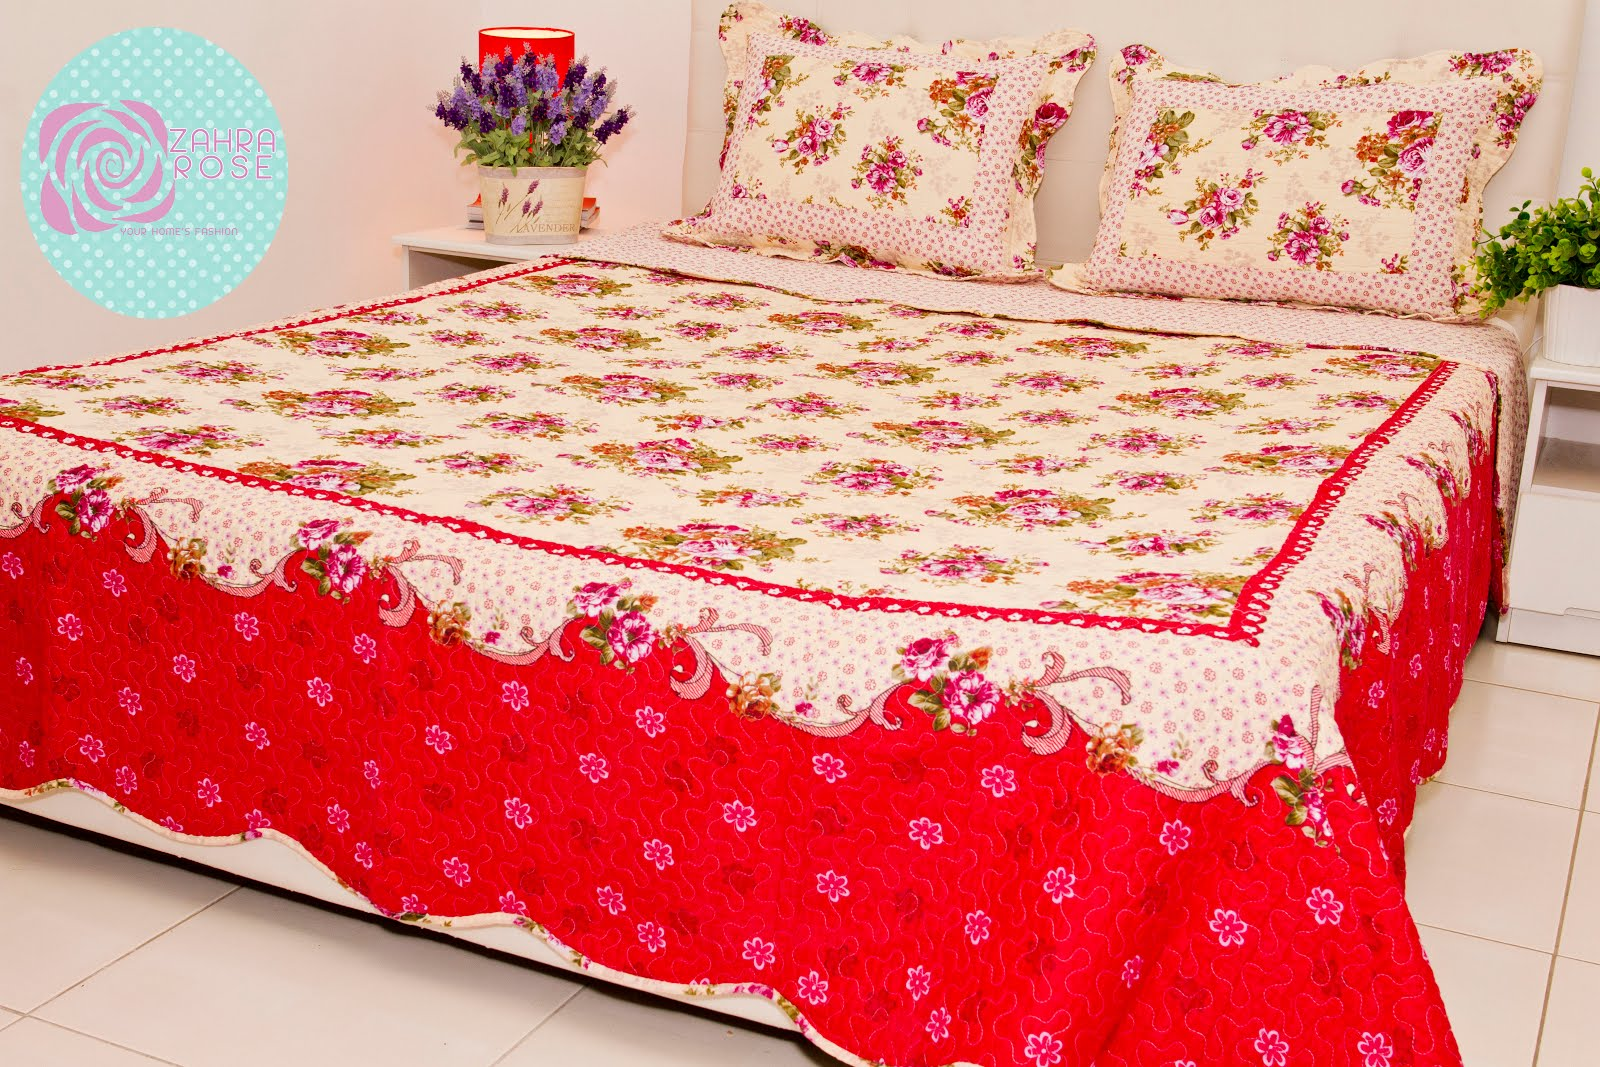 Bed sheets designs patchwork - Zahra Rose Design Cotton Patchwork Bed Sheet